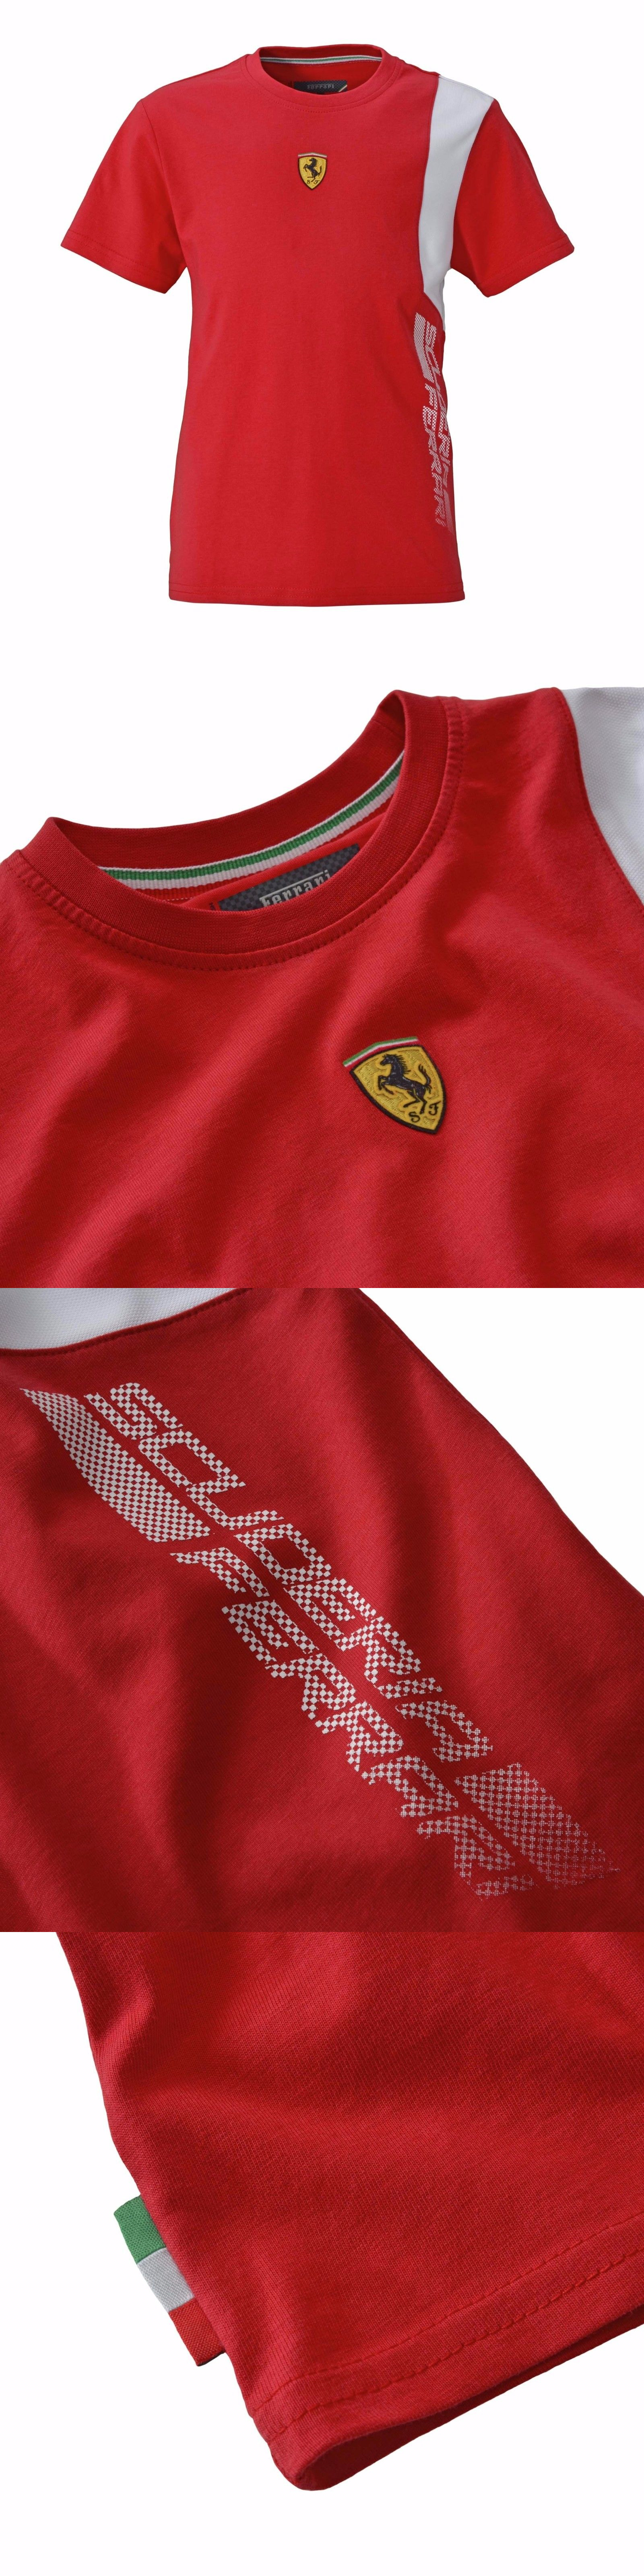 patches sleeve online kids d official en printed lu ferrari scuderia shirt item with short store unisex t